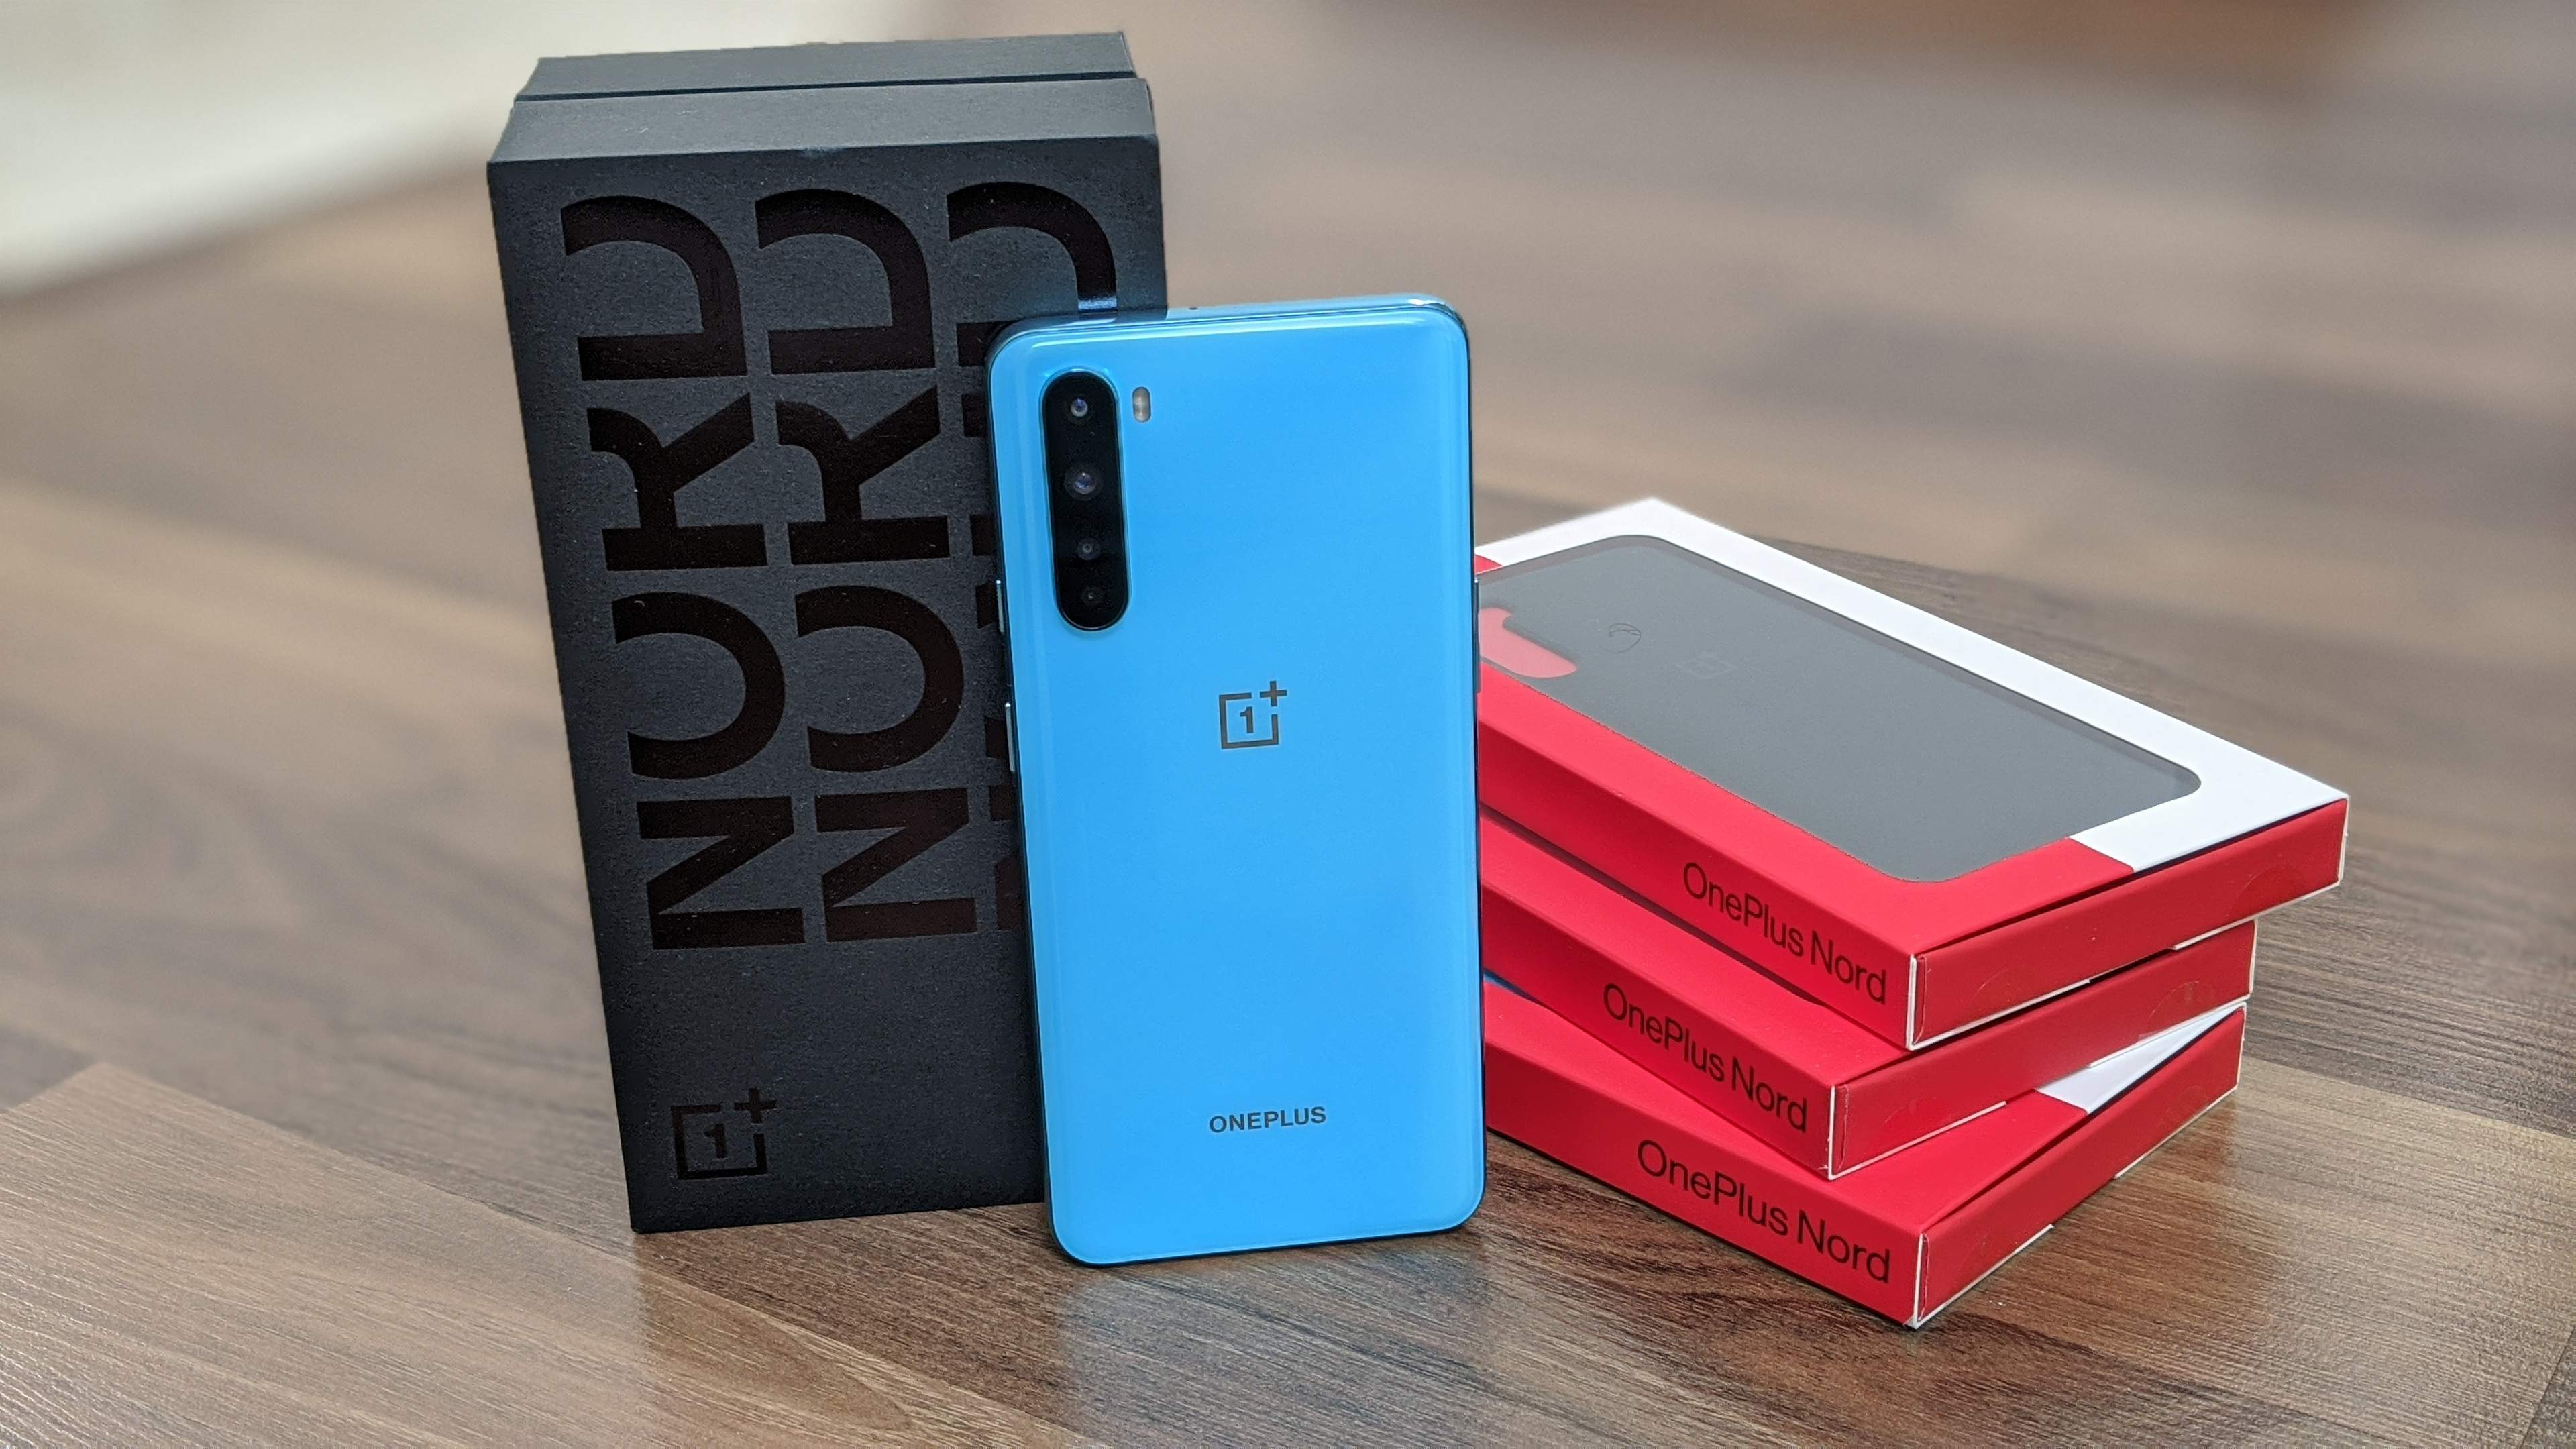 OnePlusNord - OnePlus Nord Price, Review, And Full Specs